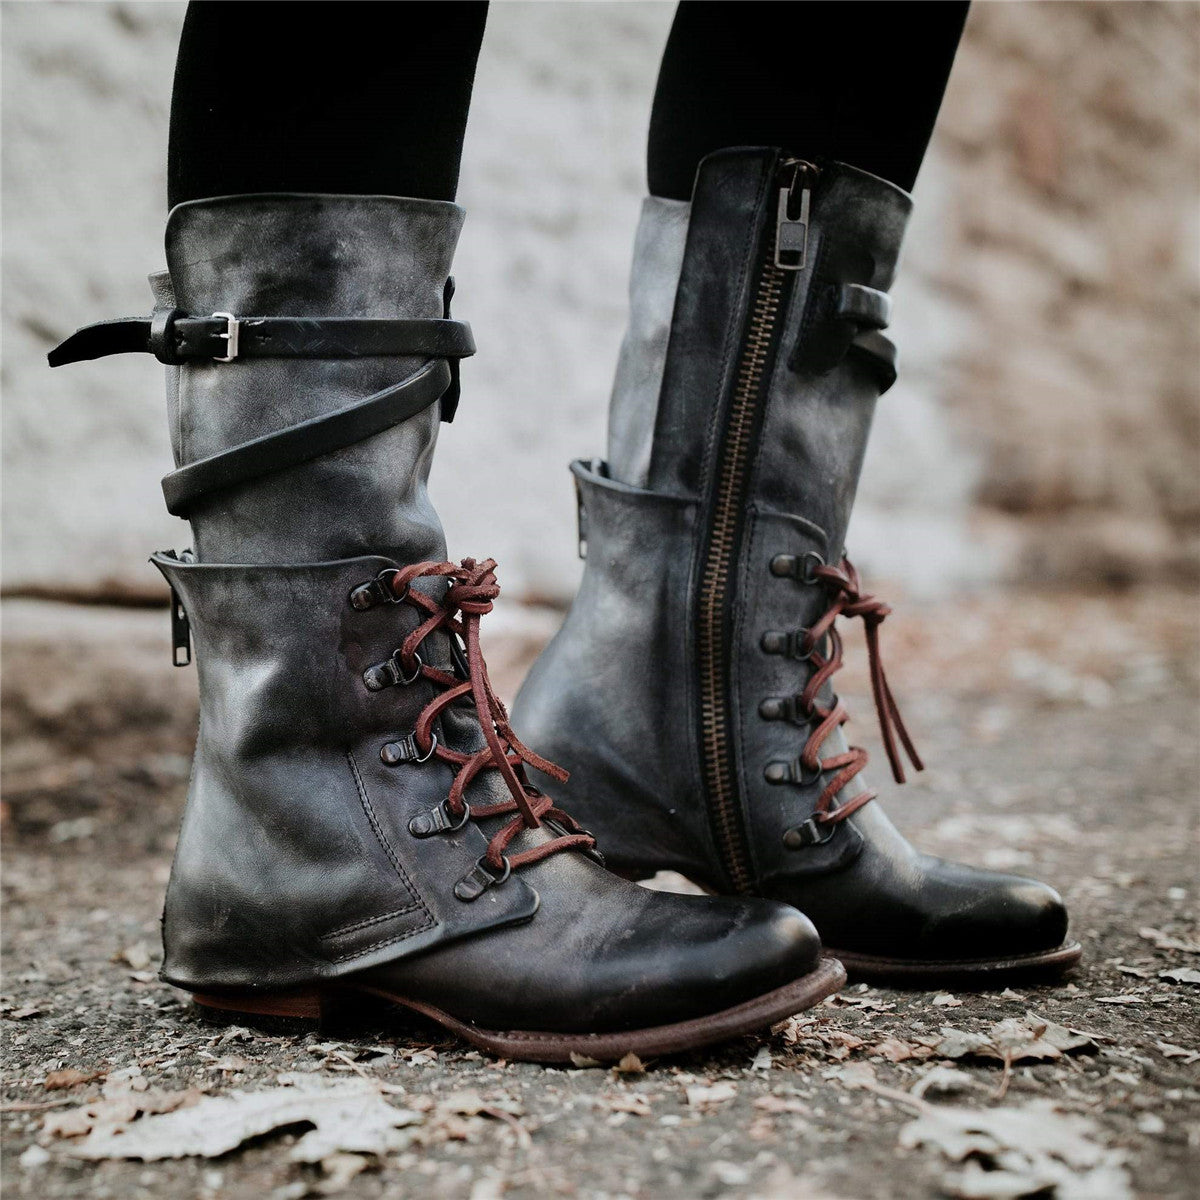 fa65f0edb0d1 Vintage Women Lace-up Boots Adjustable Buckle Faux Leather Low Heel Boots